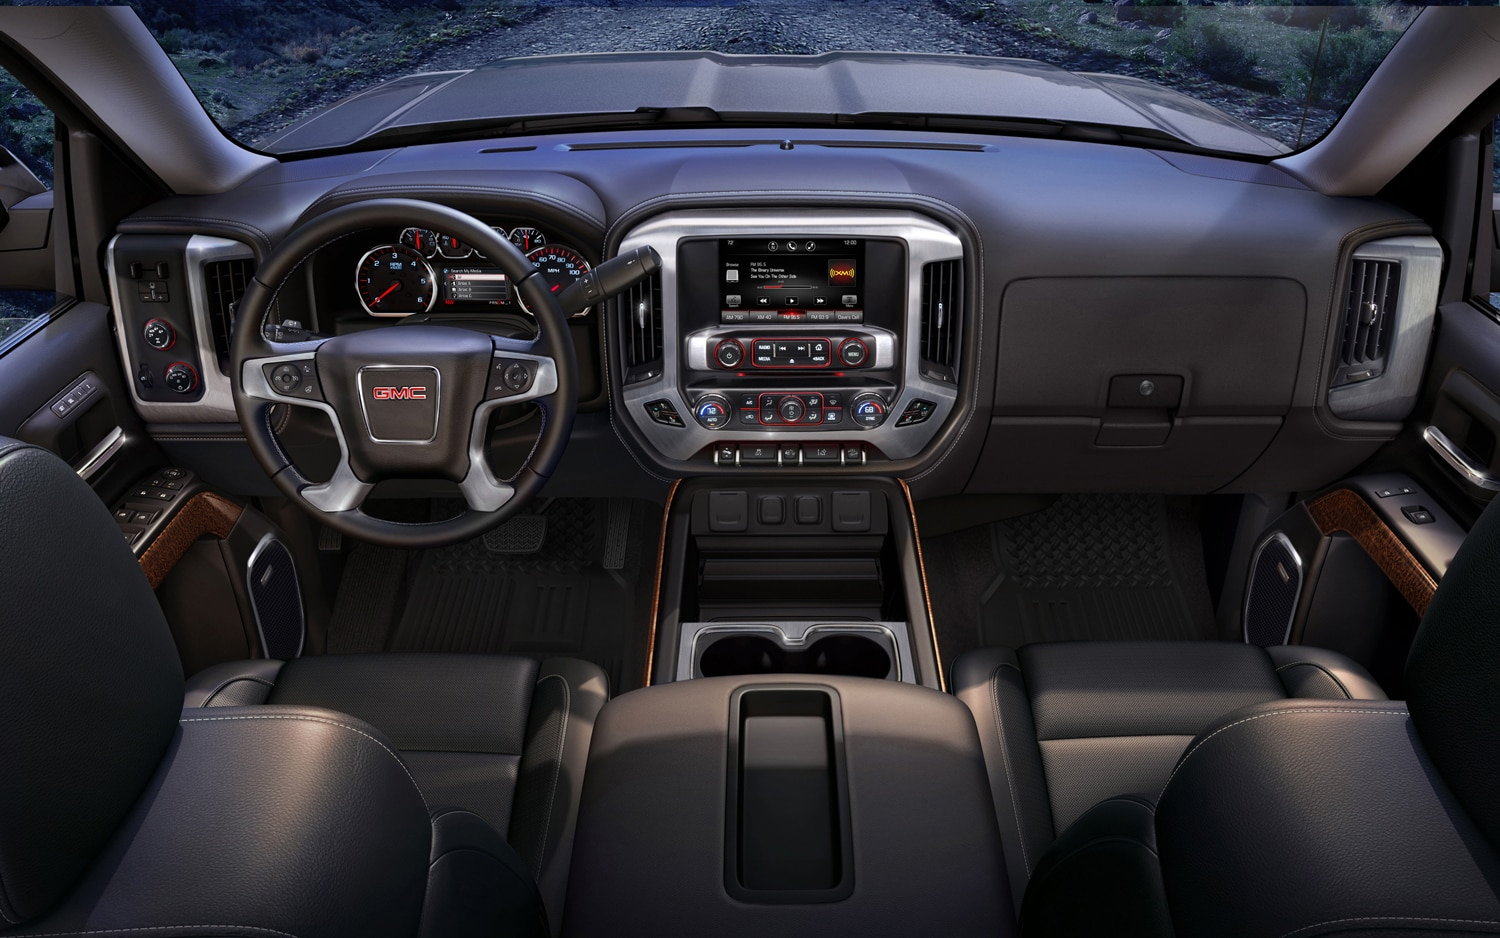 2014 GMC Sierra SLT Full Dash And IP